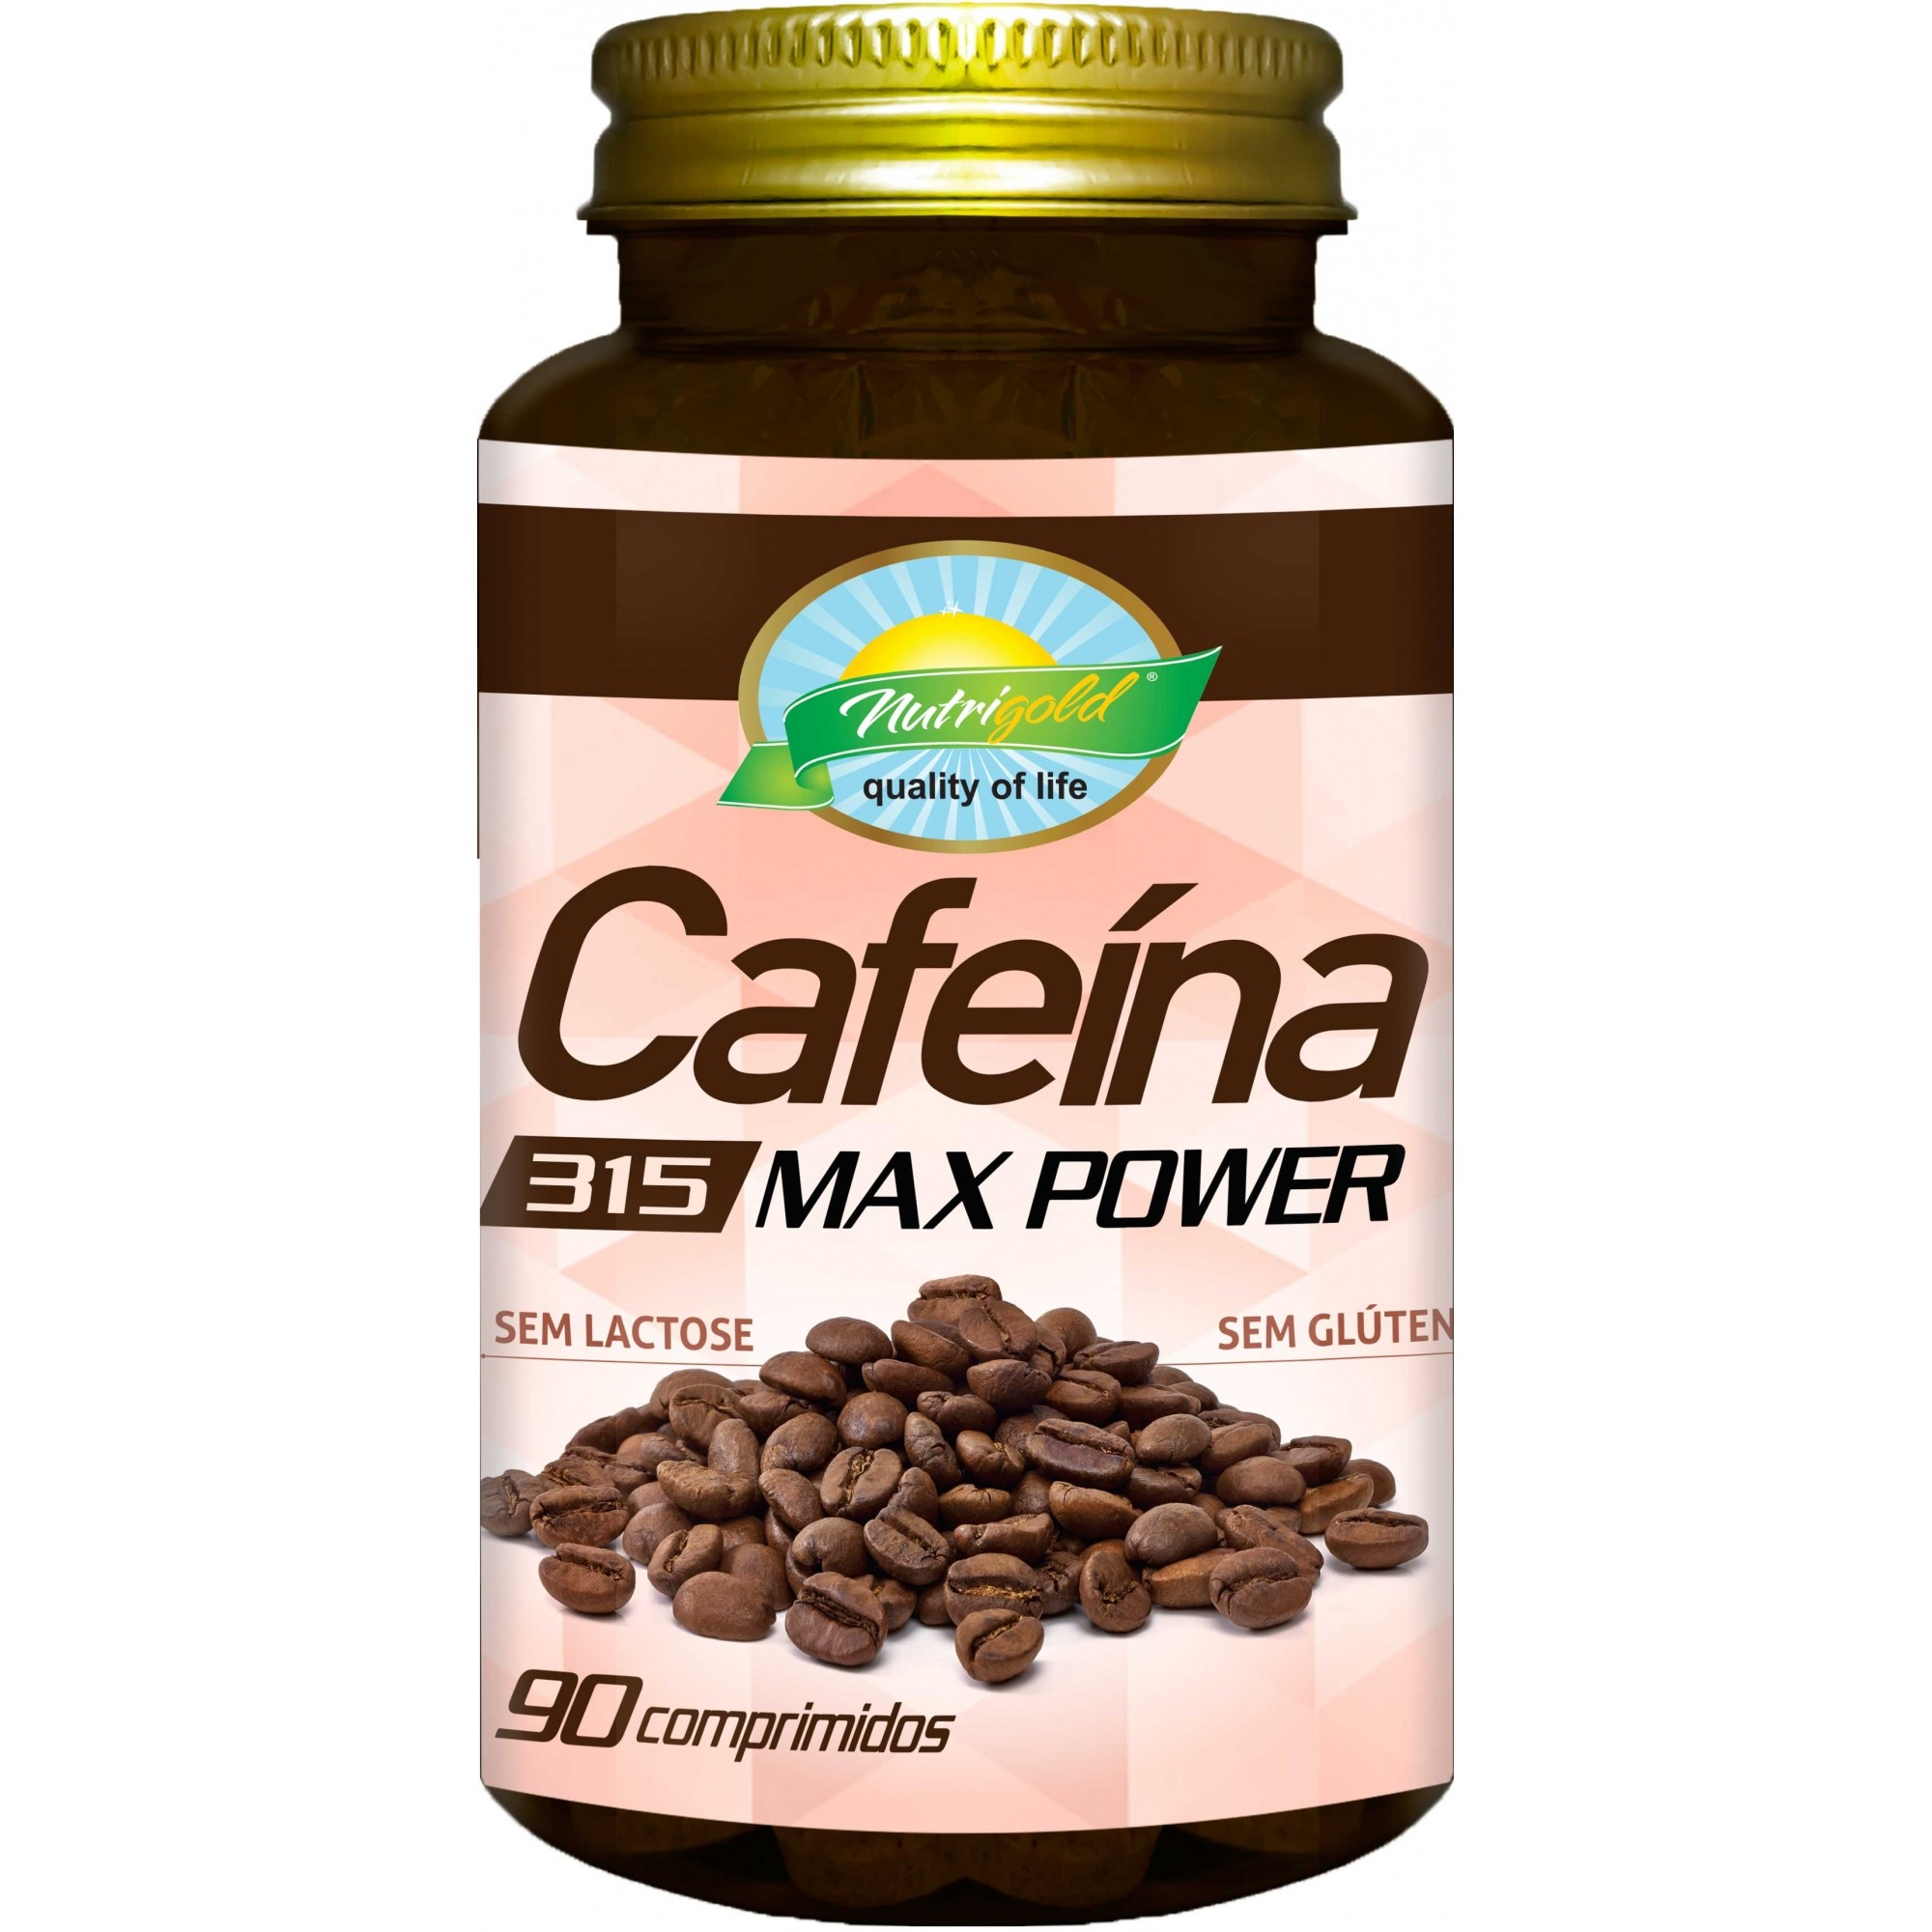 Cafeína 90 Comprimidos 315 Mg Max Power